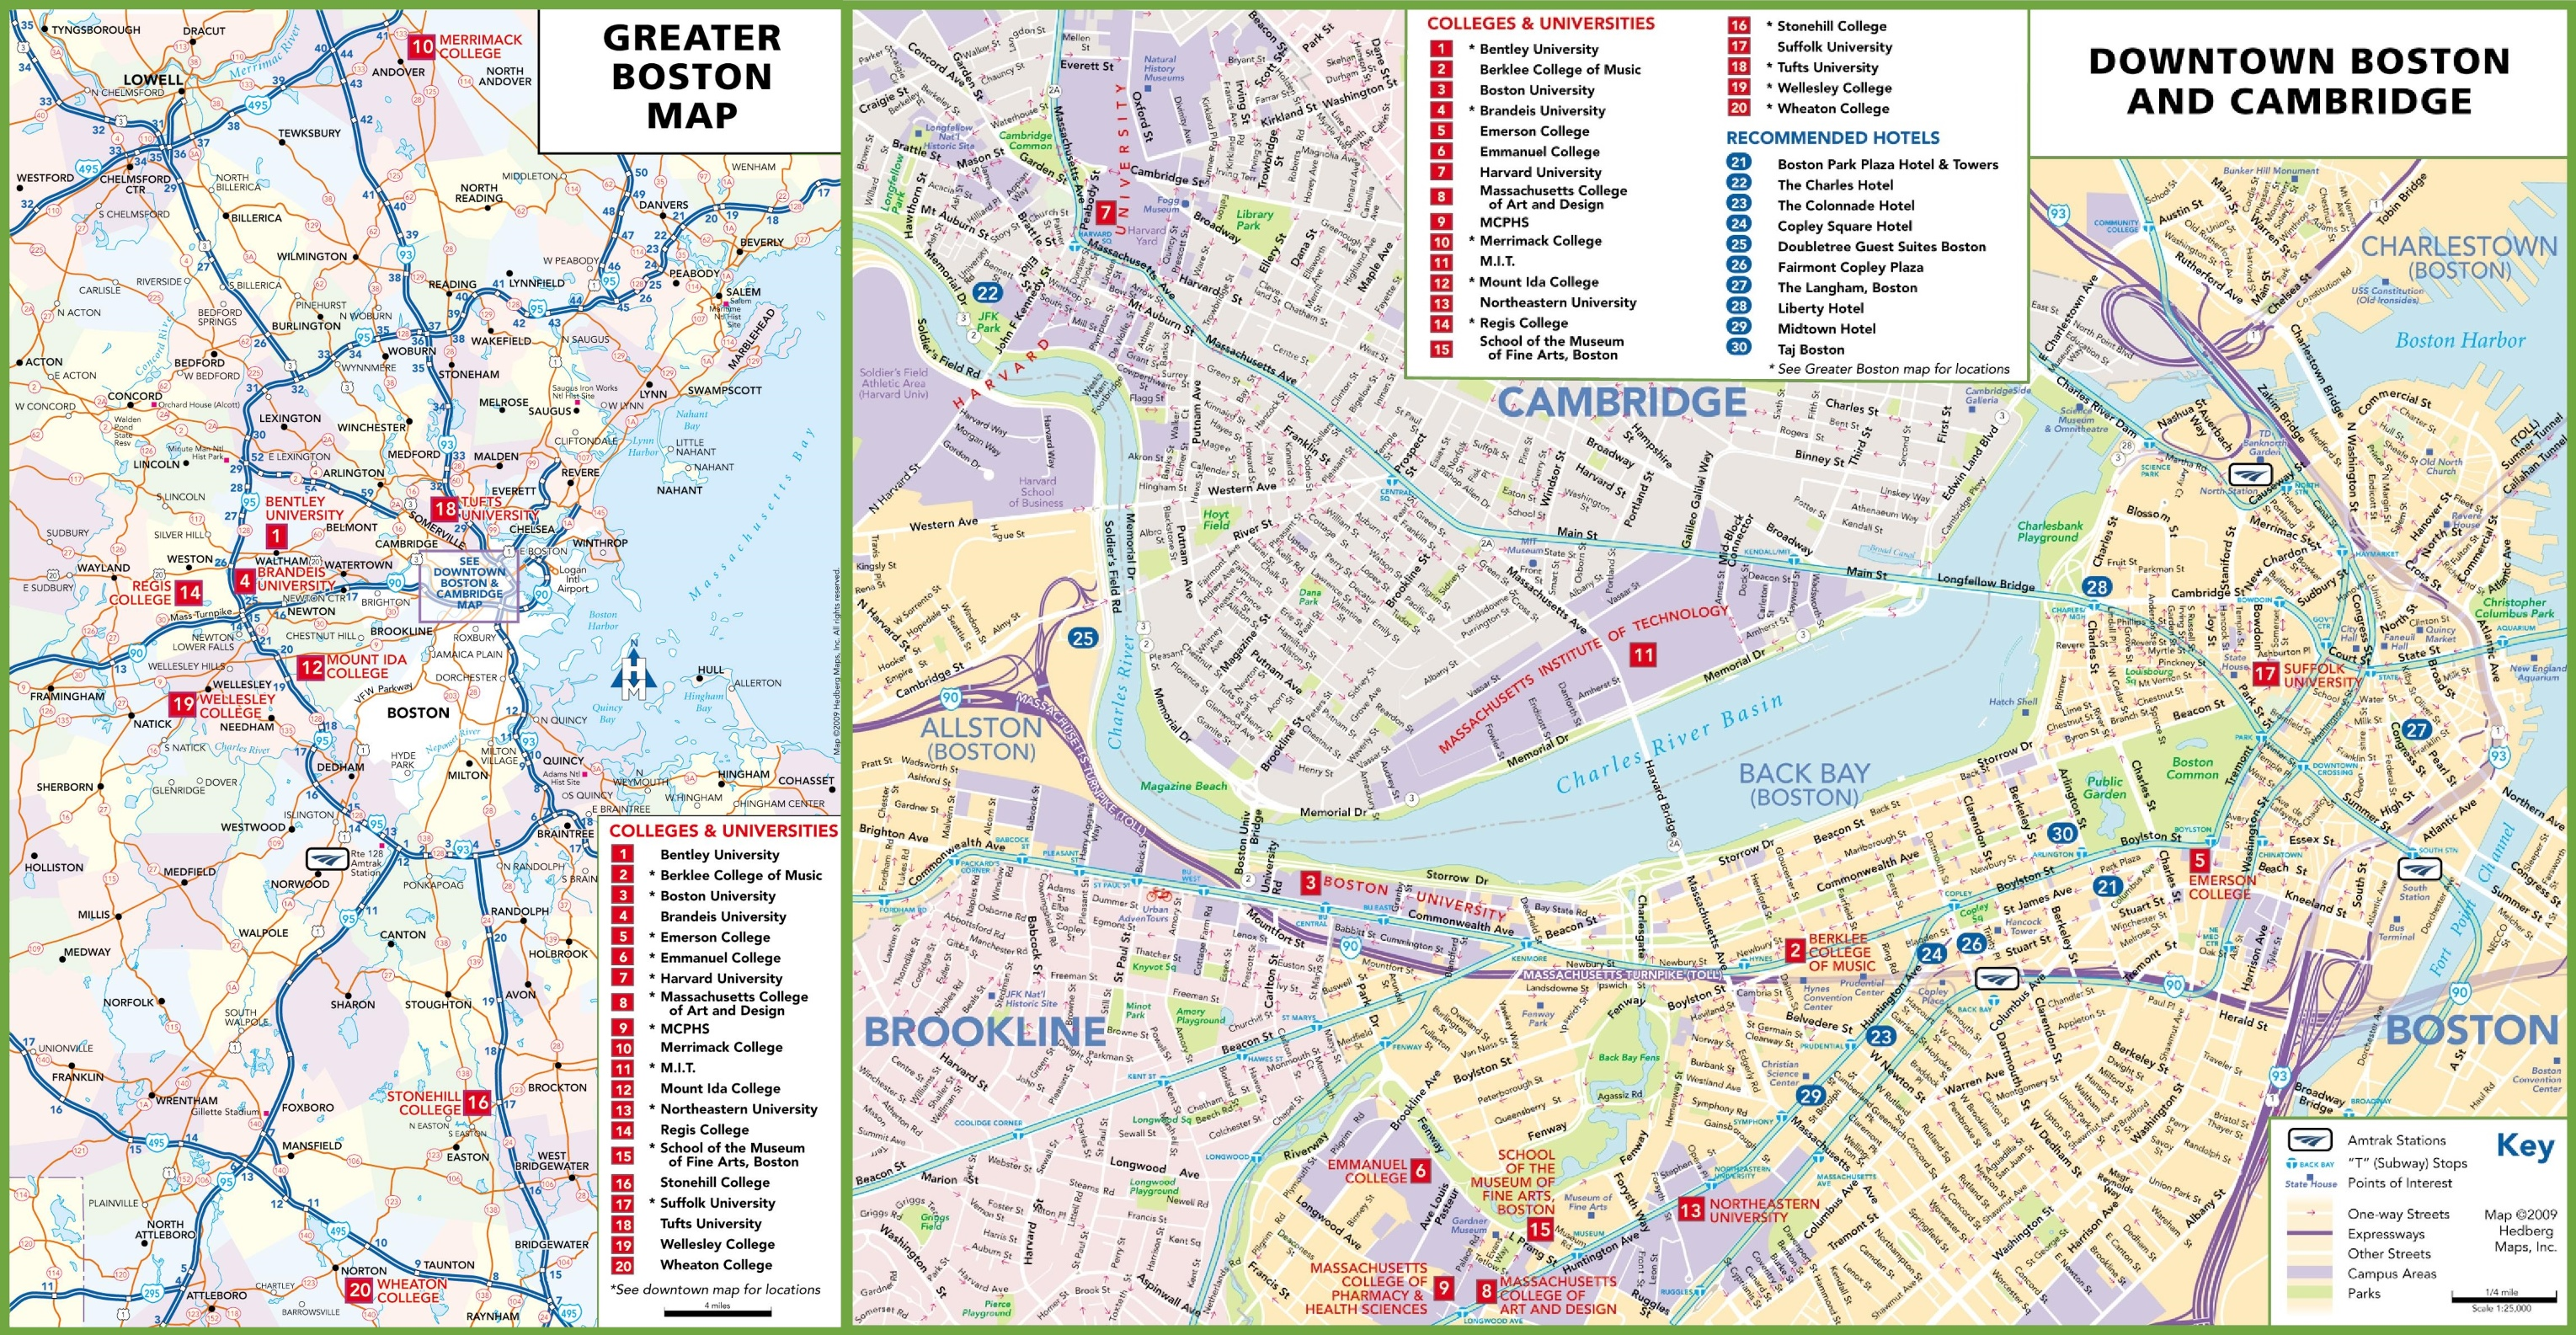 Boston Colleges And Universities Map - Map of usa with universities